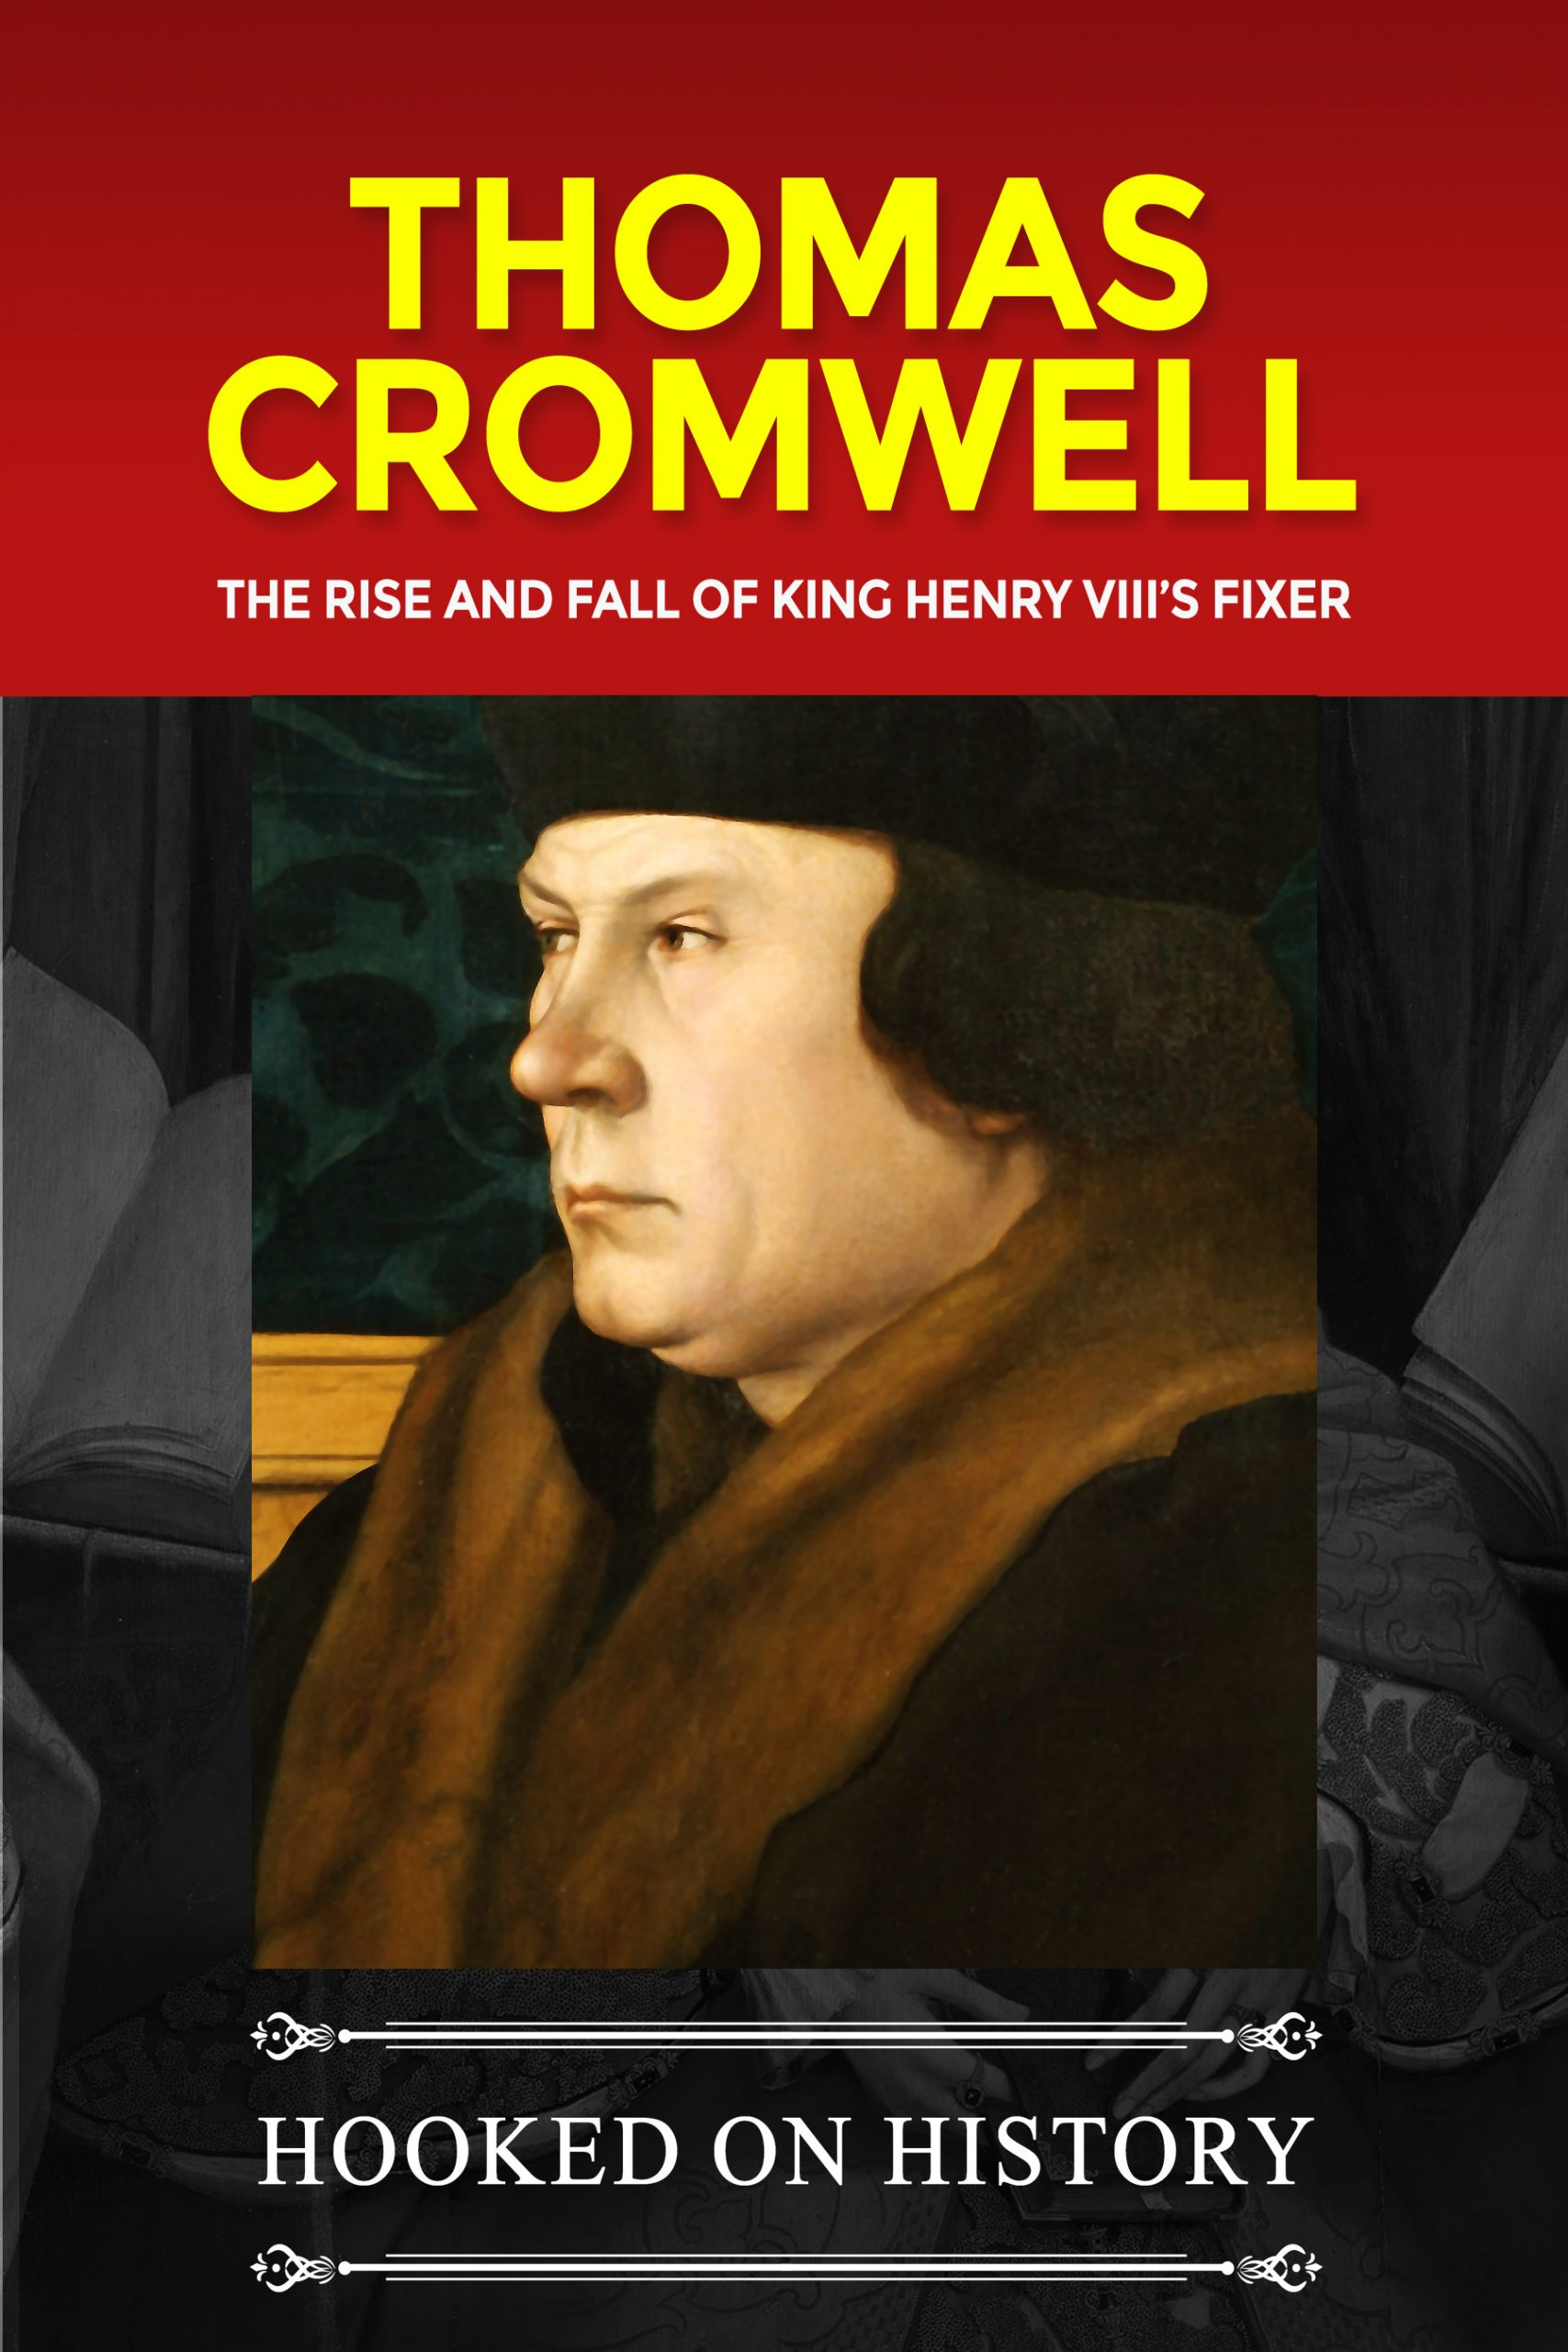 Thomas Cromwell Biography One Hour Read